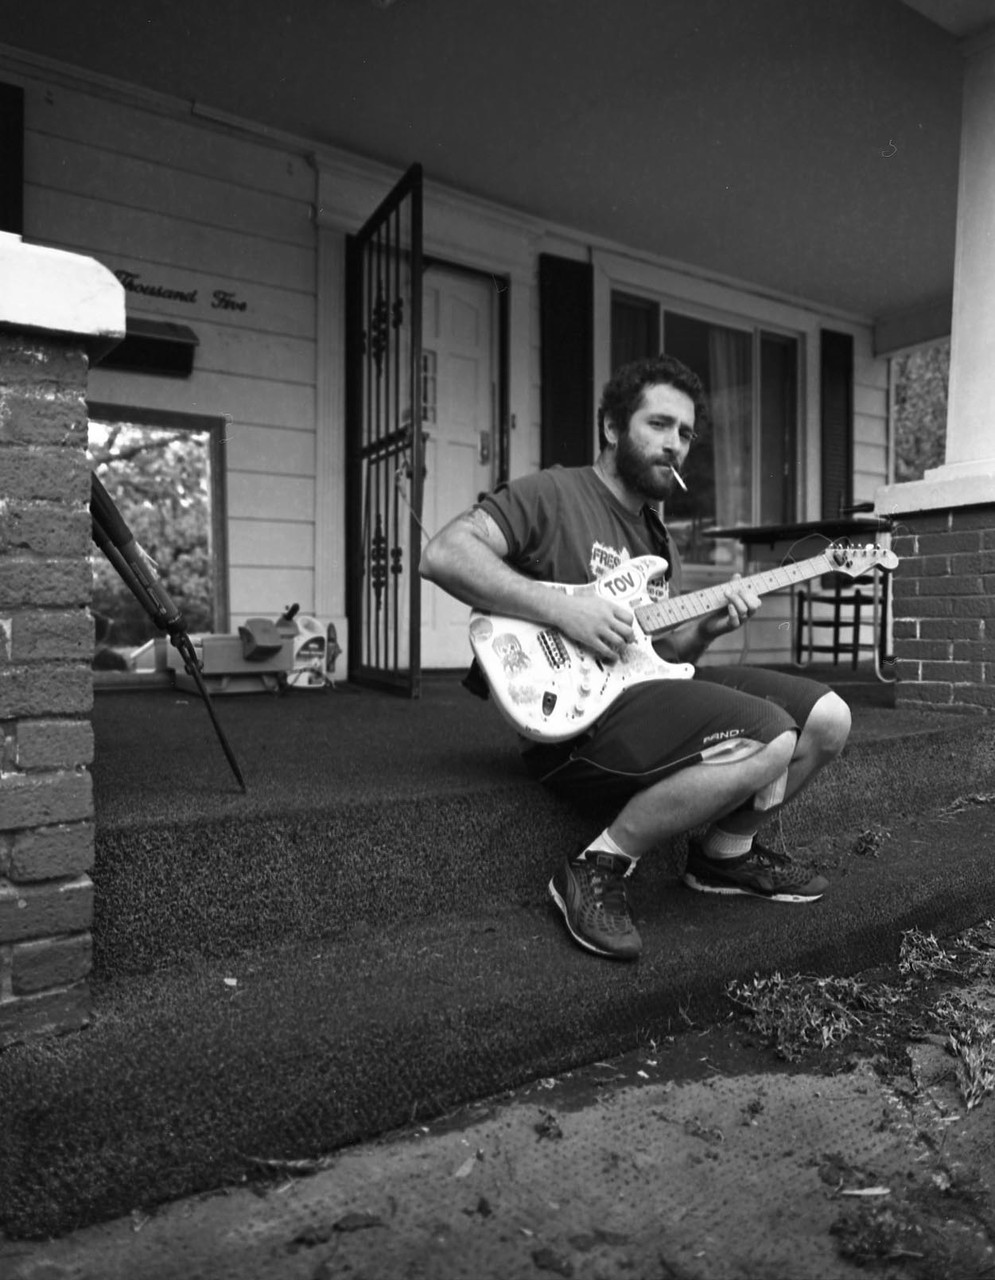 Joey, Johnson City, TN. 2015. Silver Gelatin Print.